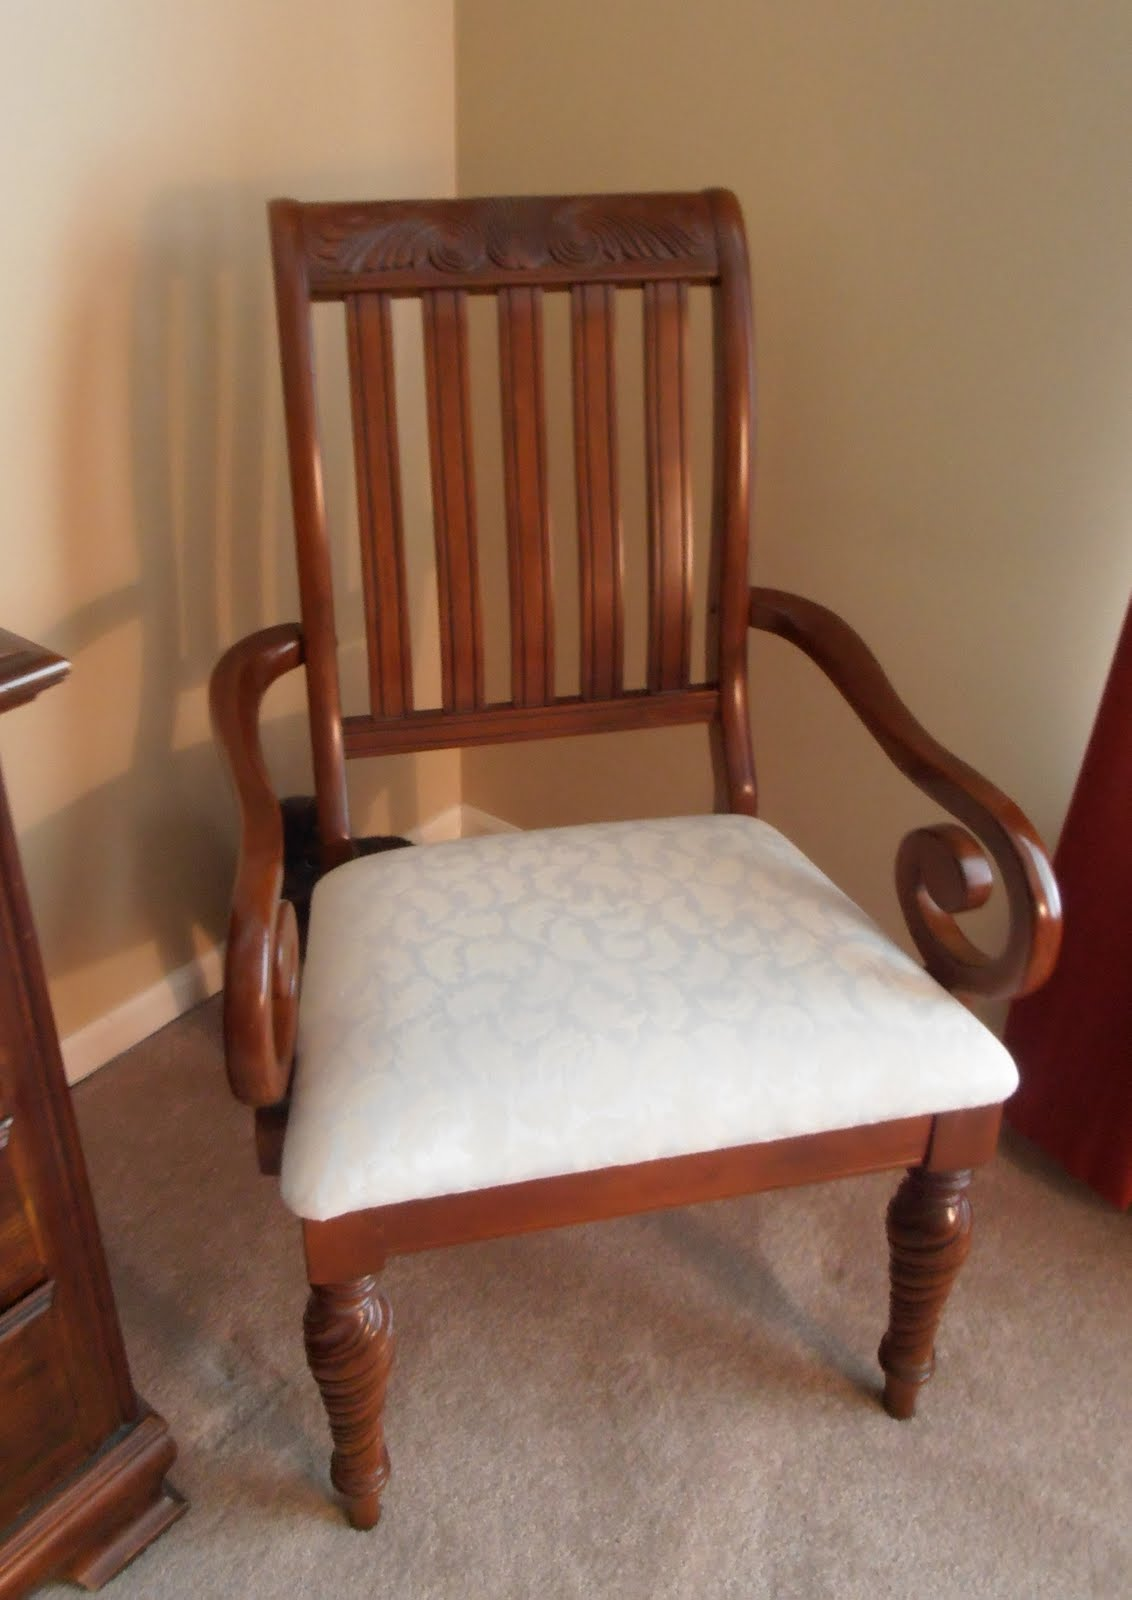 Diy reupholstering my dining room chairs decoration for Ideas for reupholstering dining room chairs